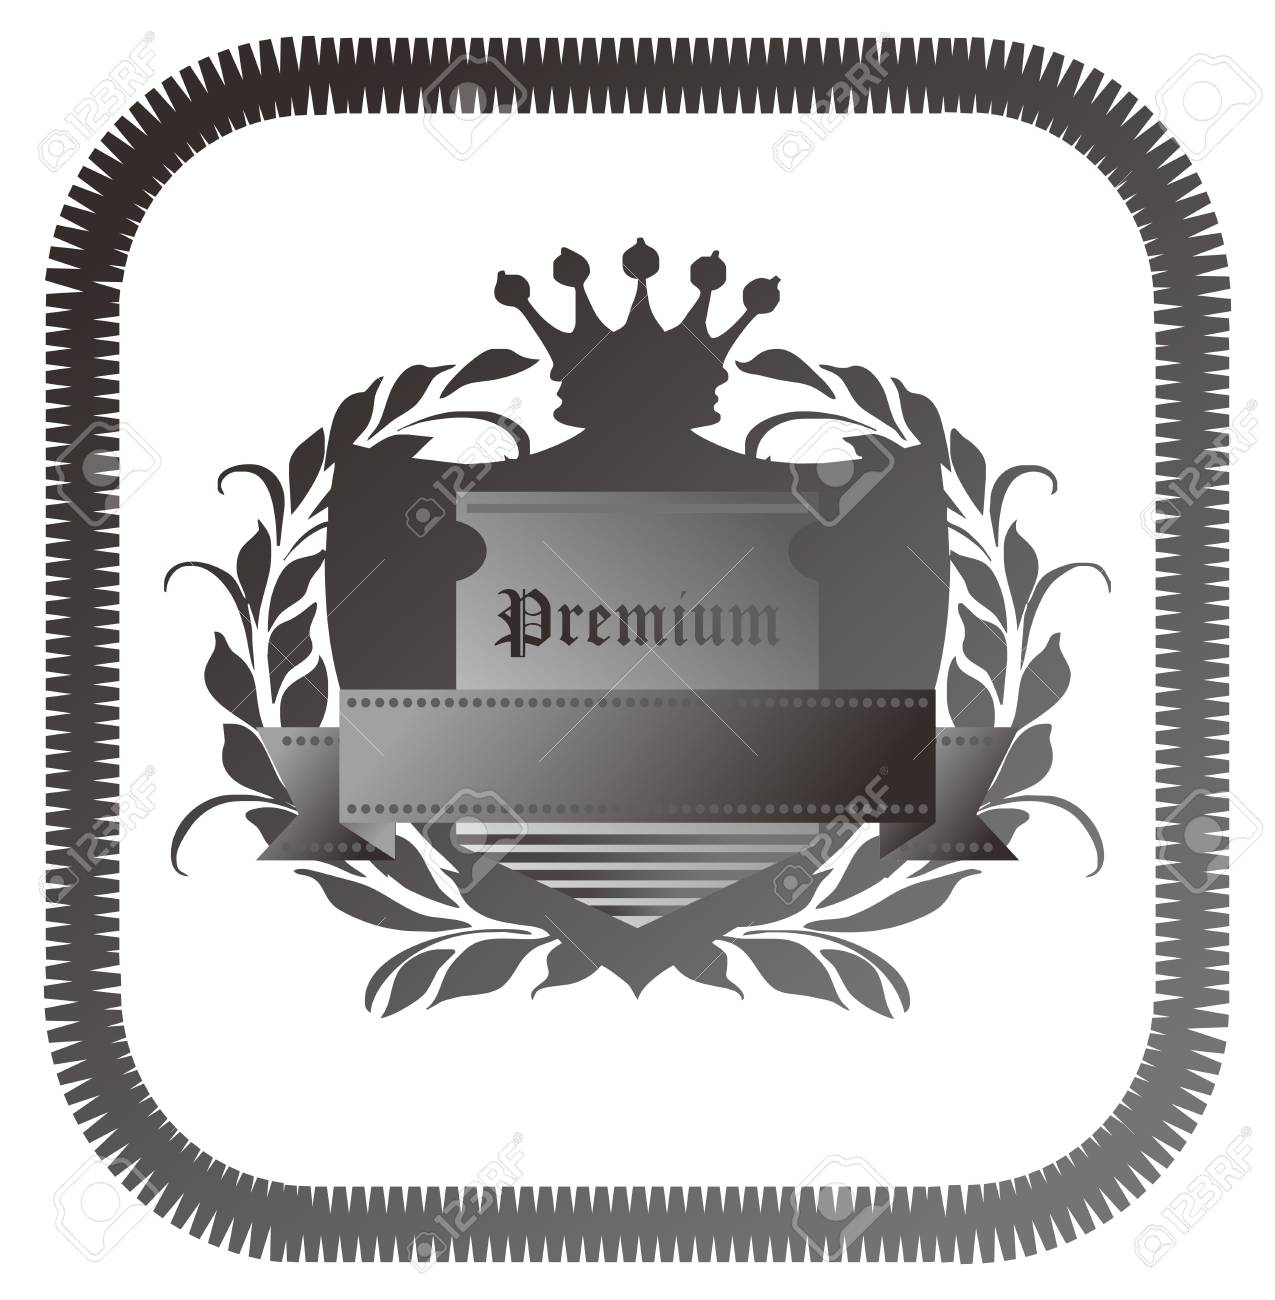 premium grey Stock Vector - 17205832